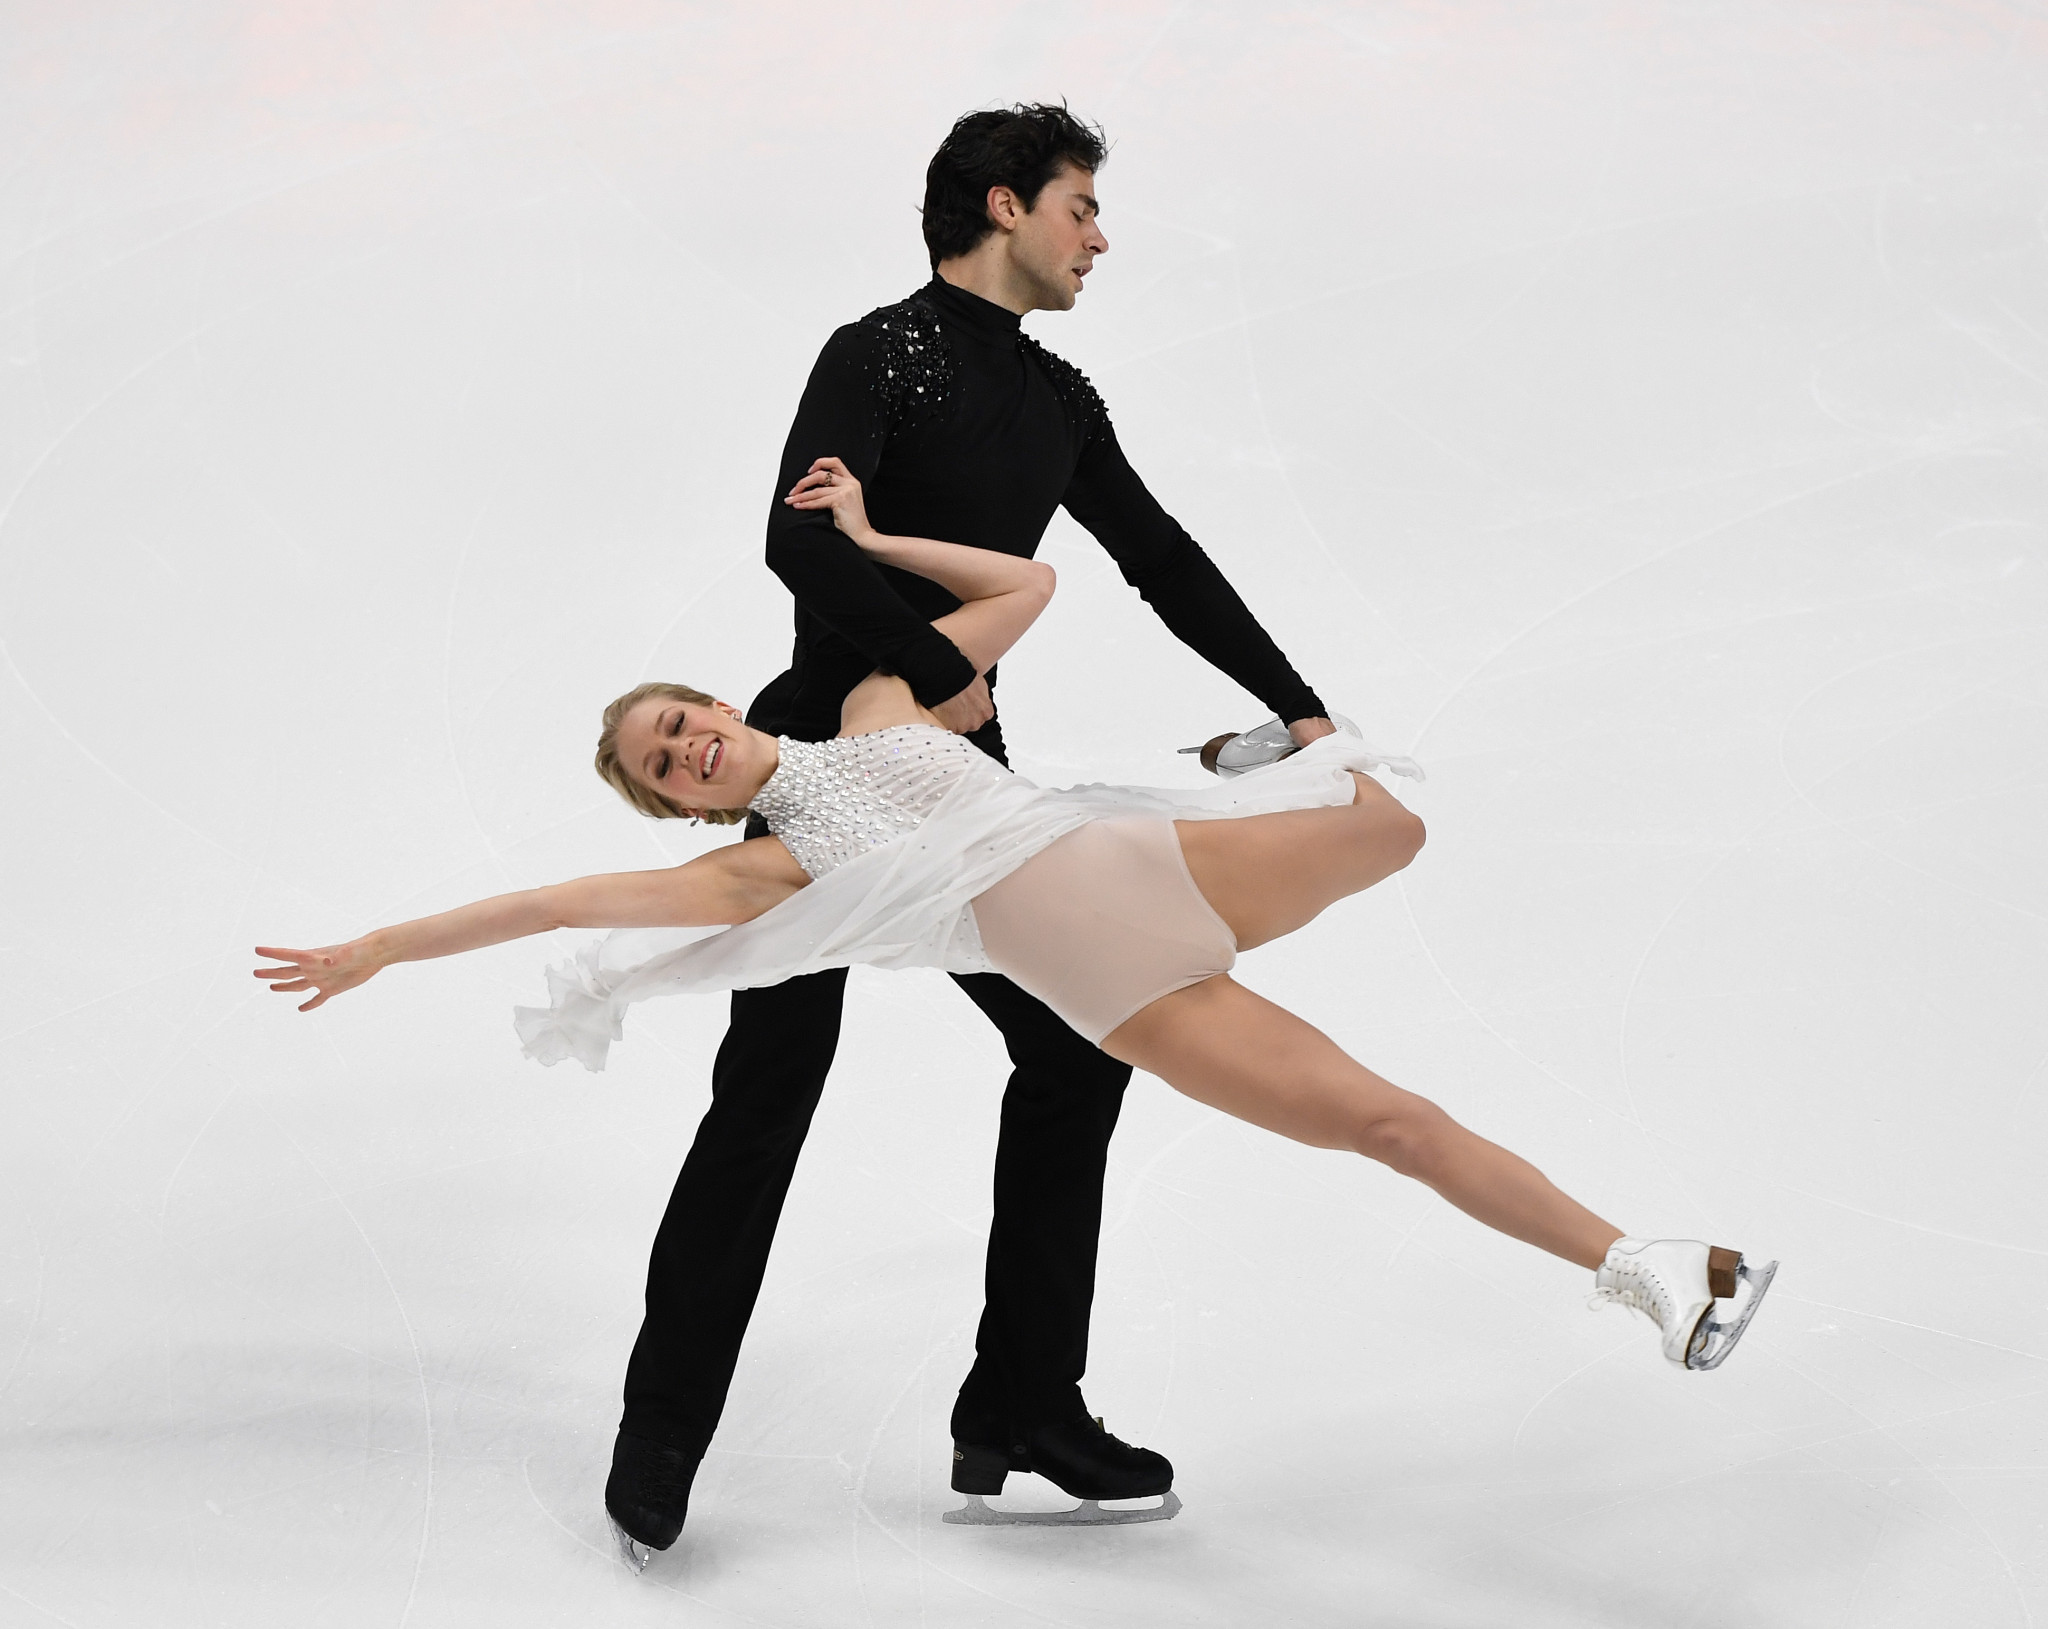 Kaitlyn Weaver and Andrew Poje claimed the silver medal in Anaheim ©Getty Images